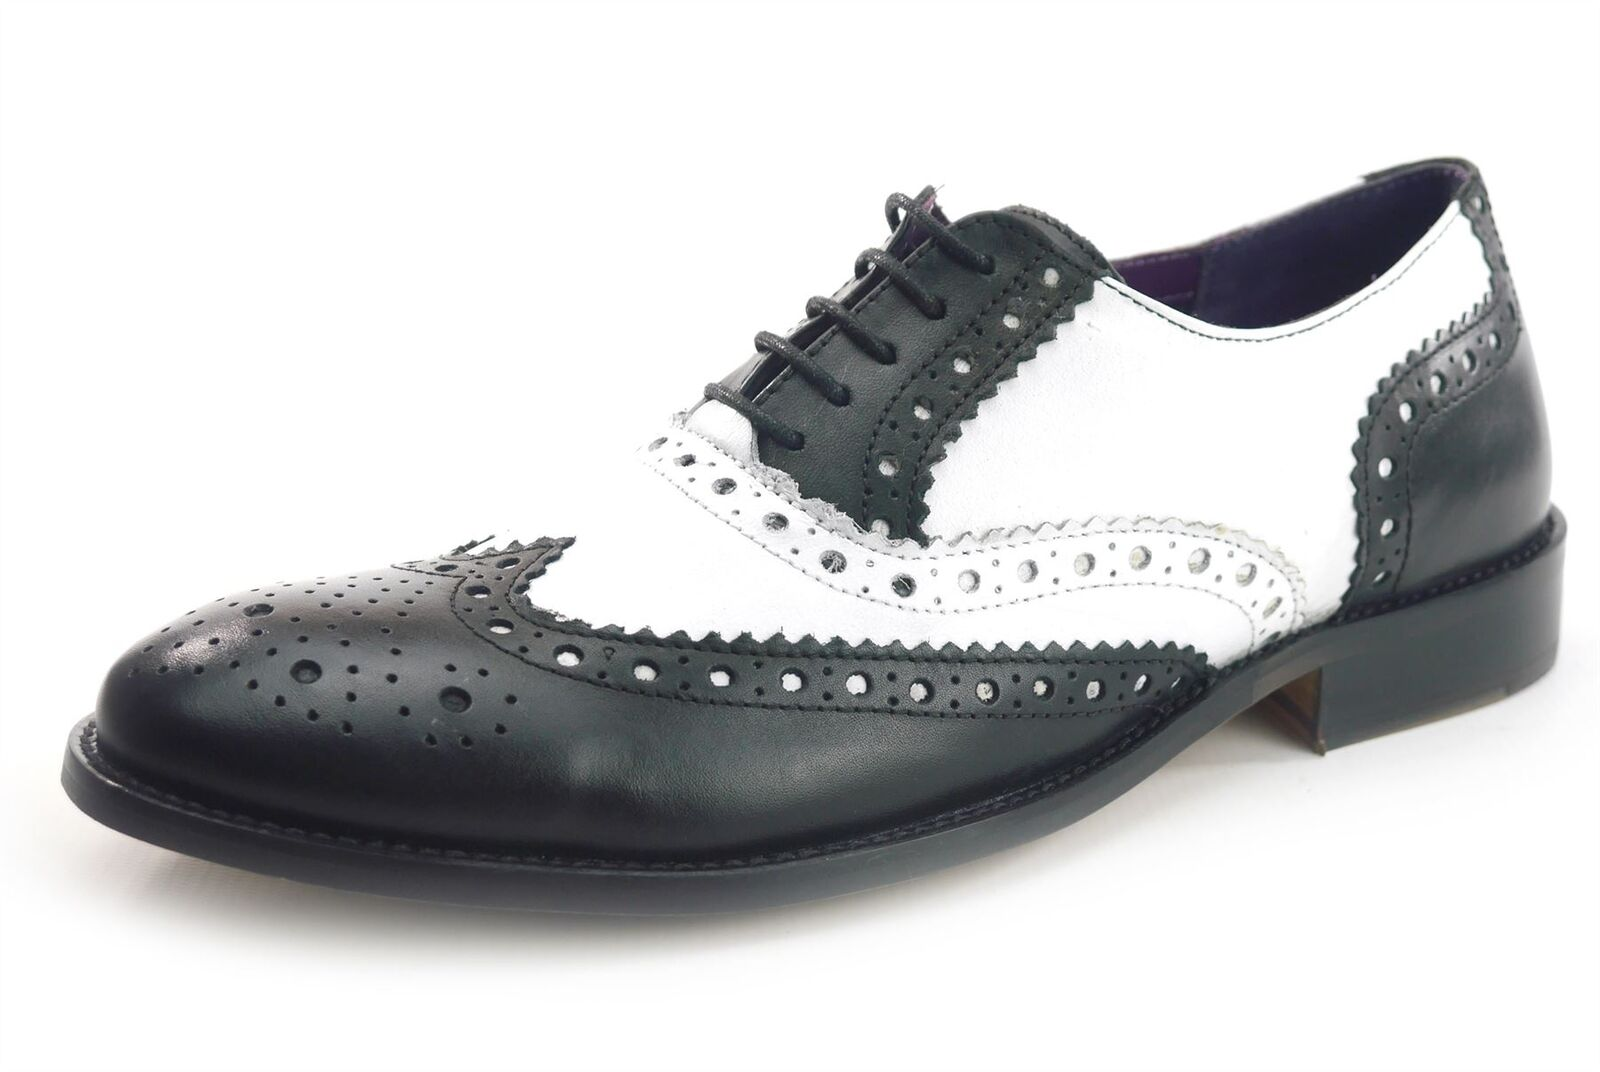 Frank James Redford Brogues Lace Up Formal Mens Leather Shoes Black White